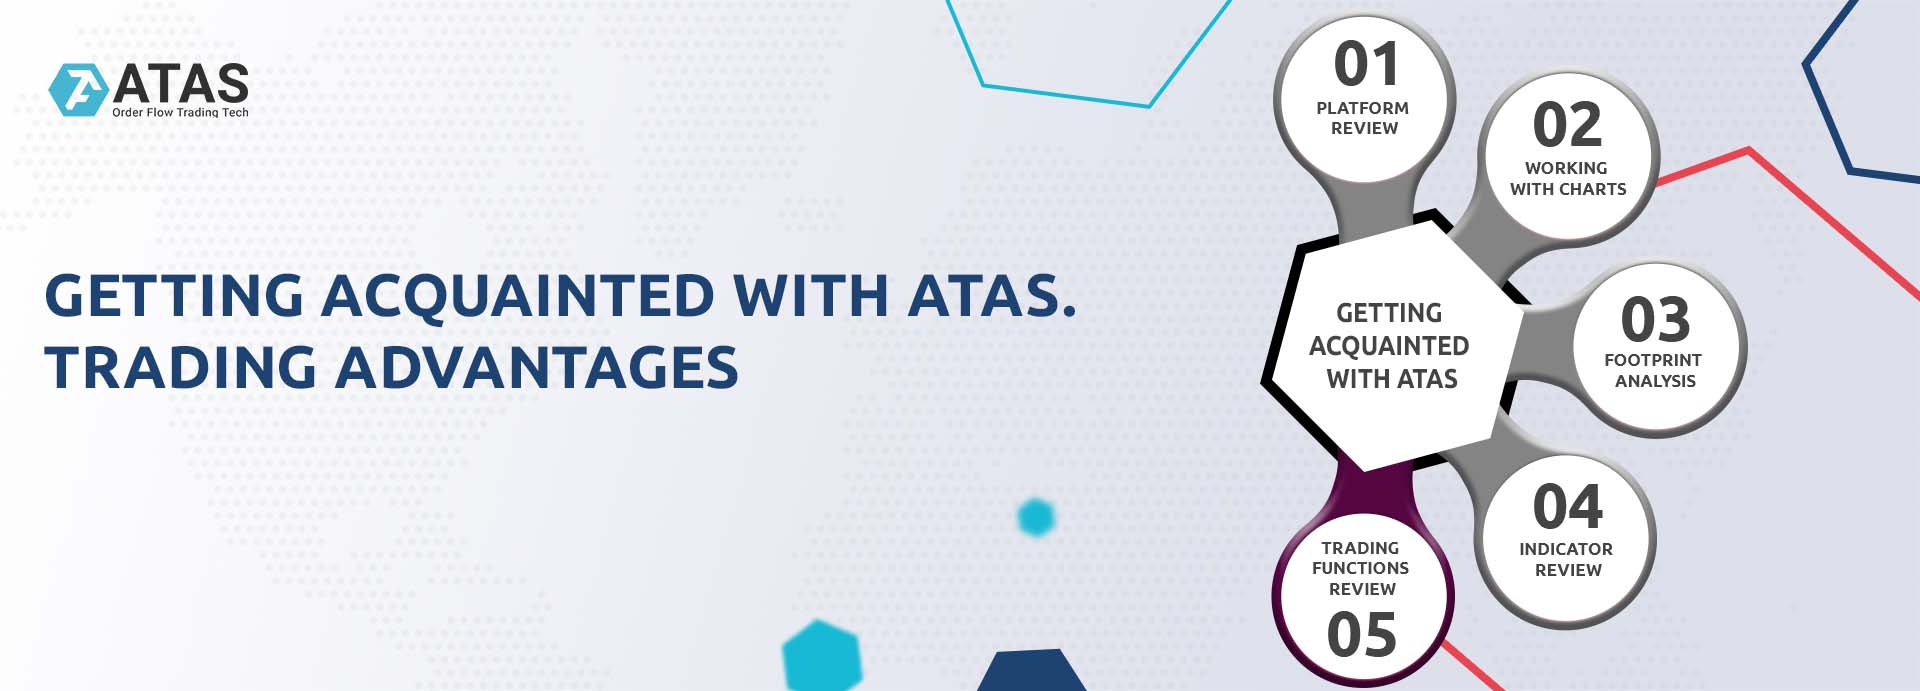 Getting acquainted with ATAS. Trading advantages